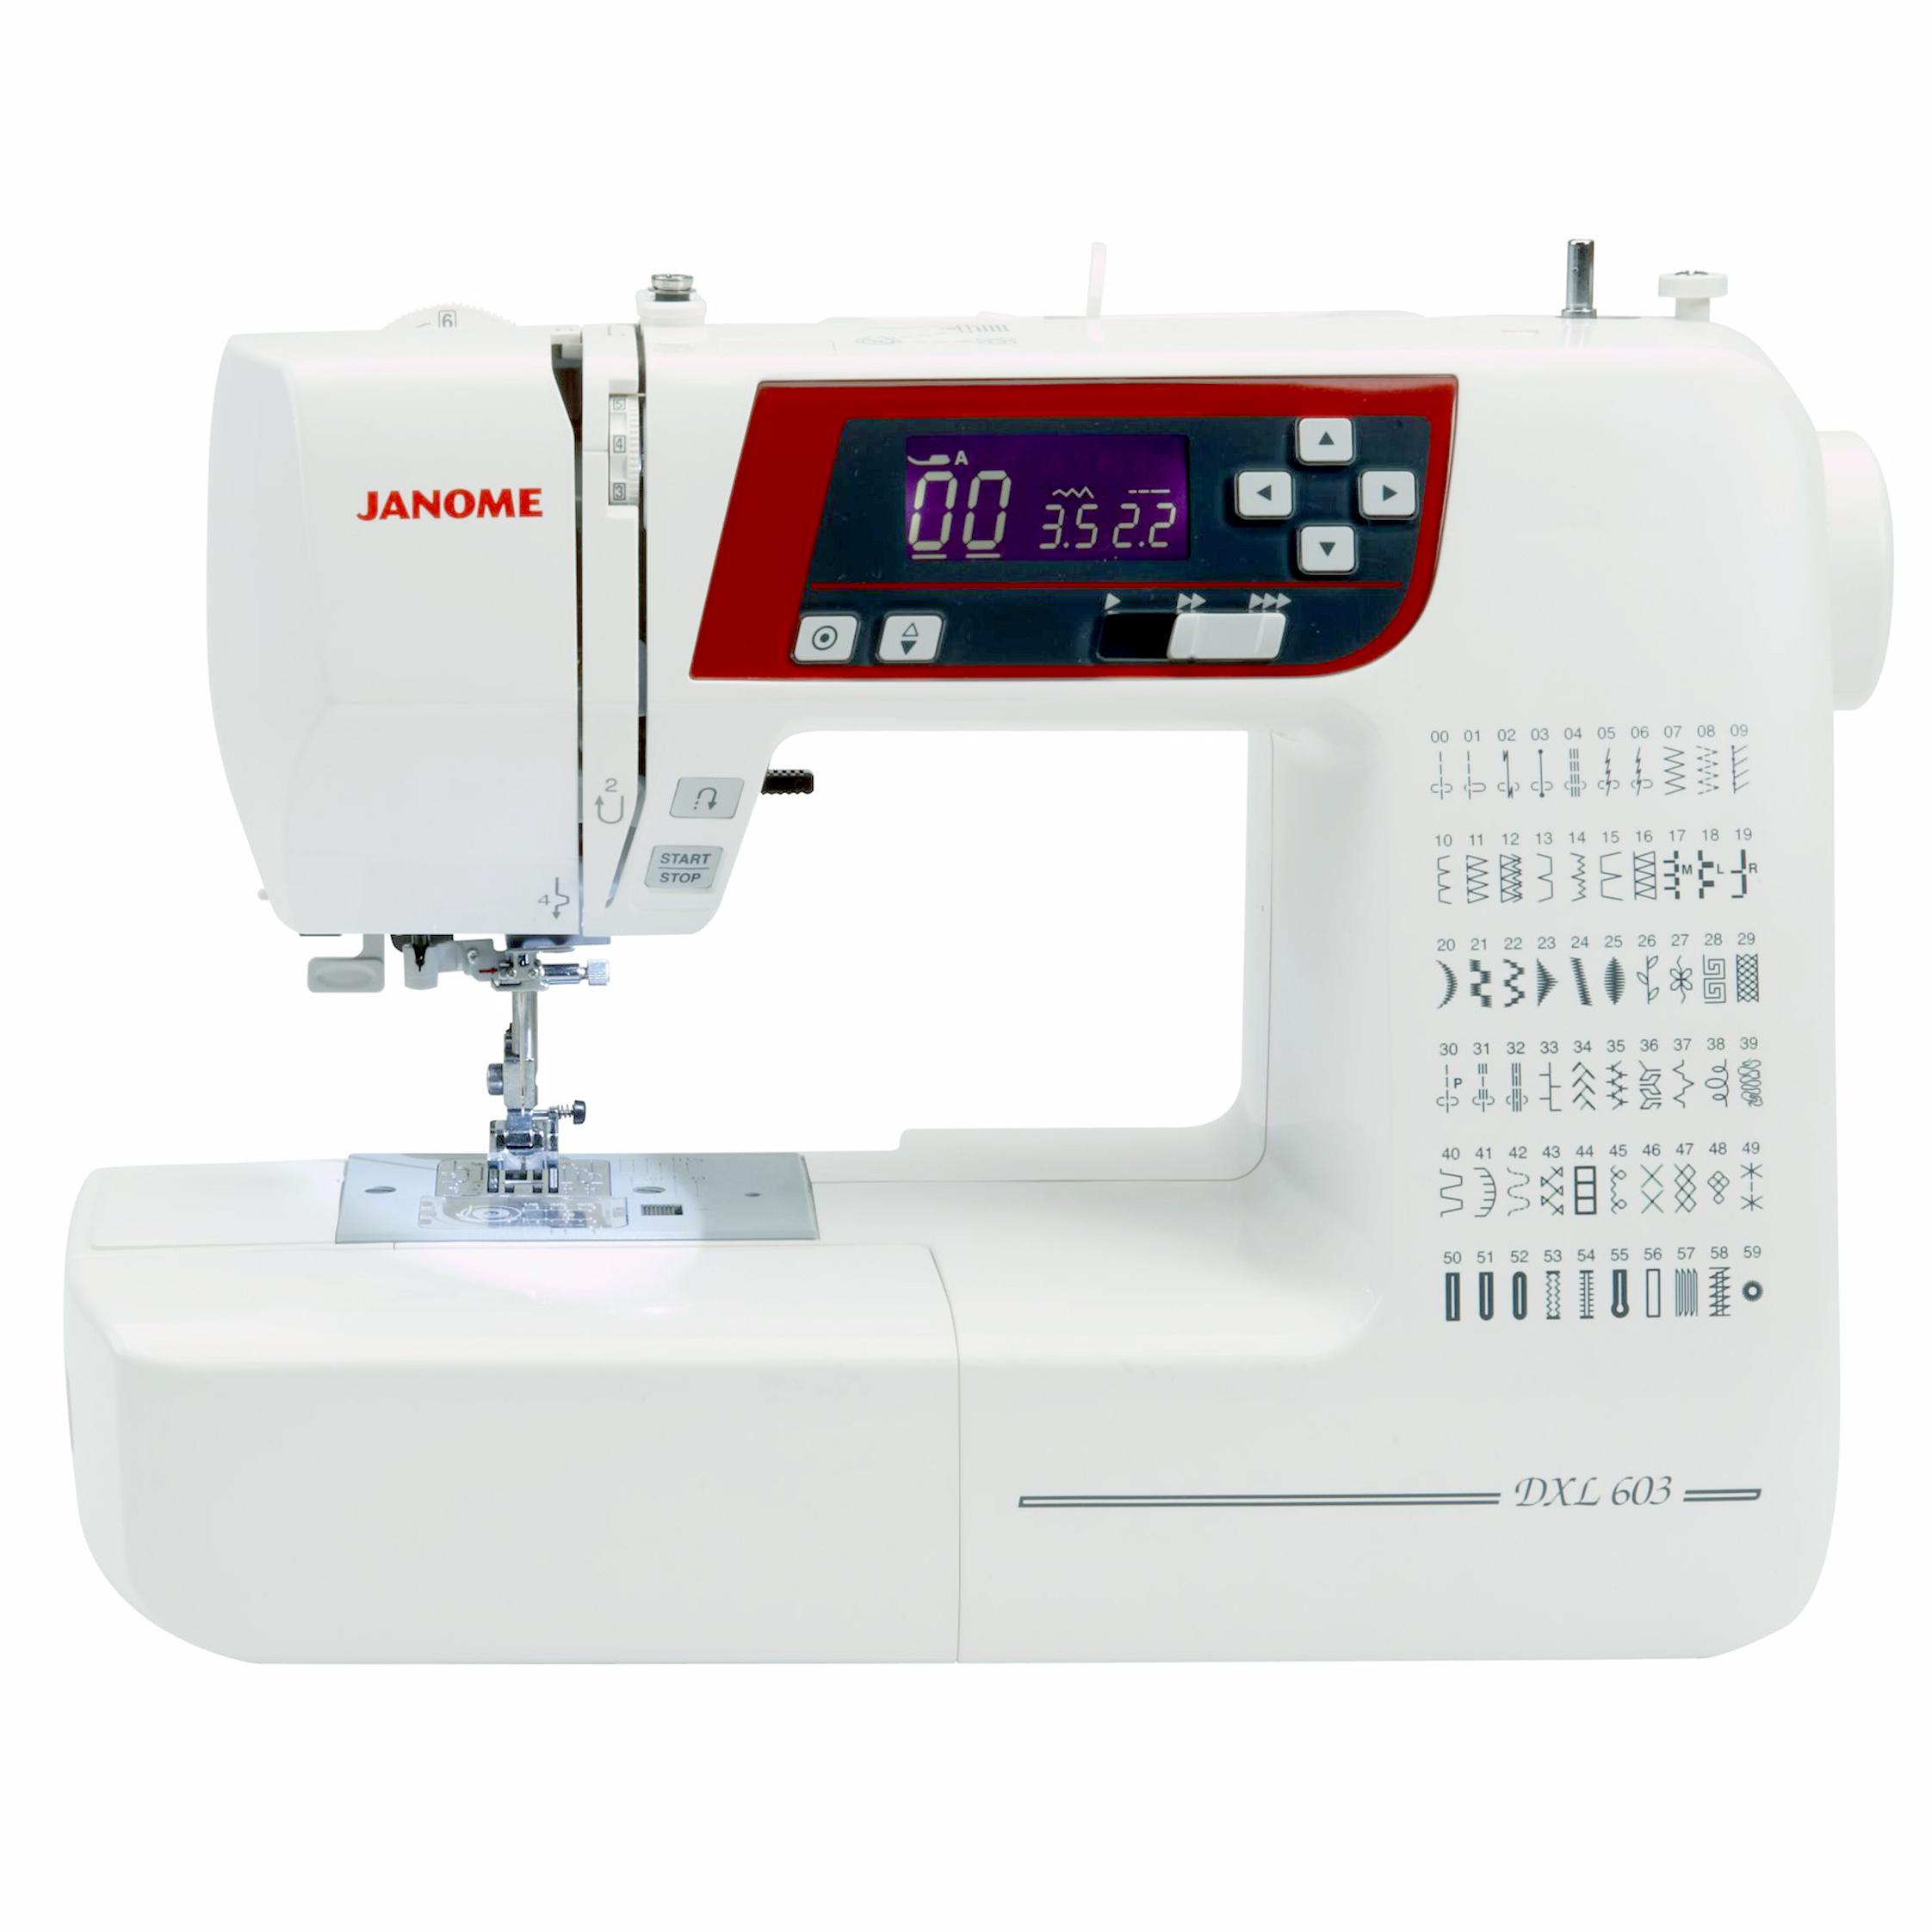 today mod bonus buttonholes stitches janome white computerized featured with hard machine presser free feet quilting crafts sewing shipping cover fully product and quilt stitch